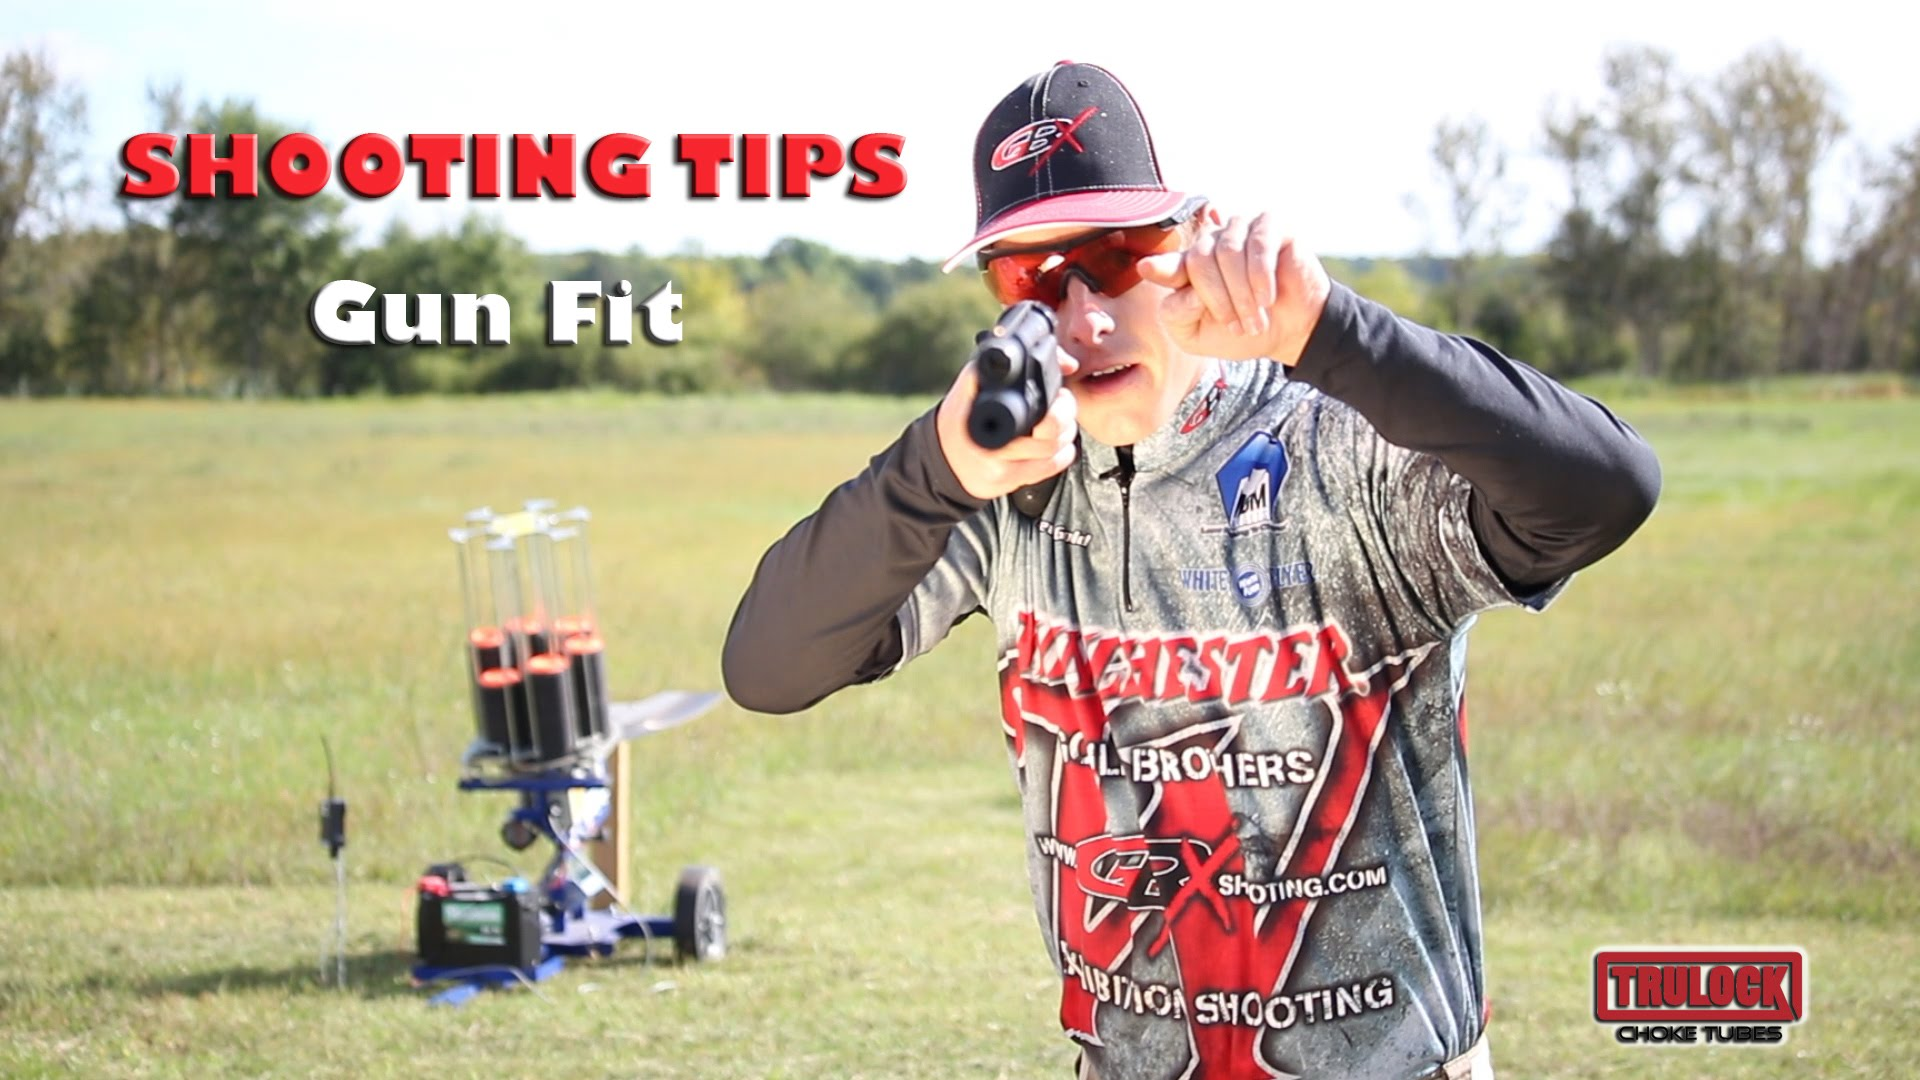 Tips for Better Wing & Clay Shooting - Proper Gun Fit